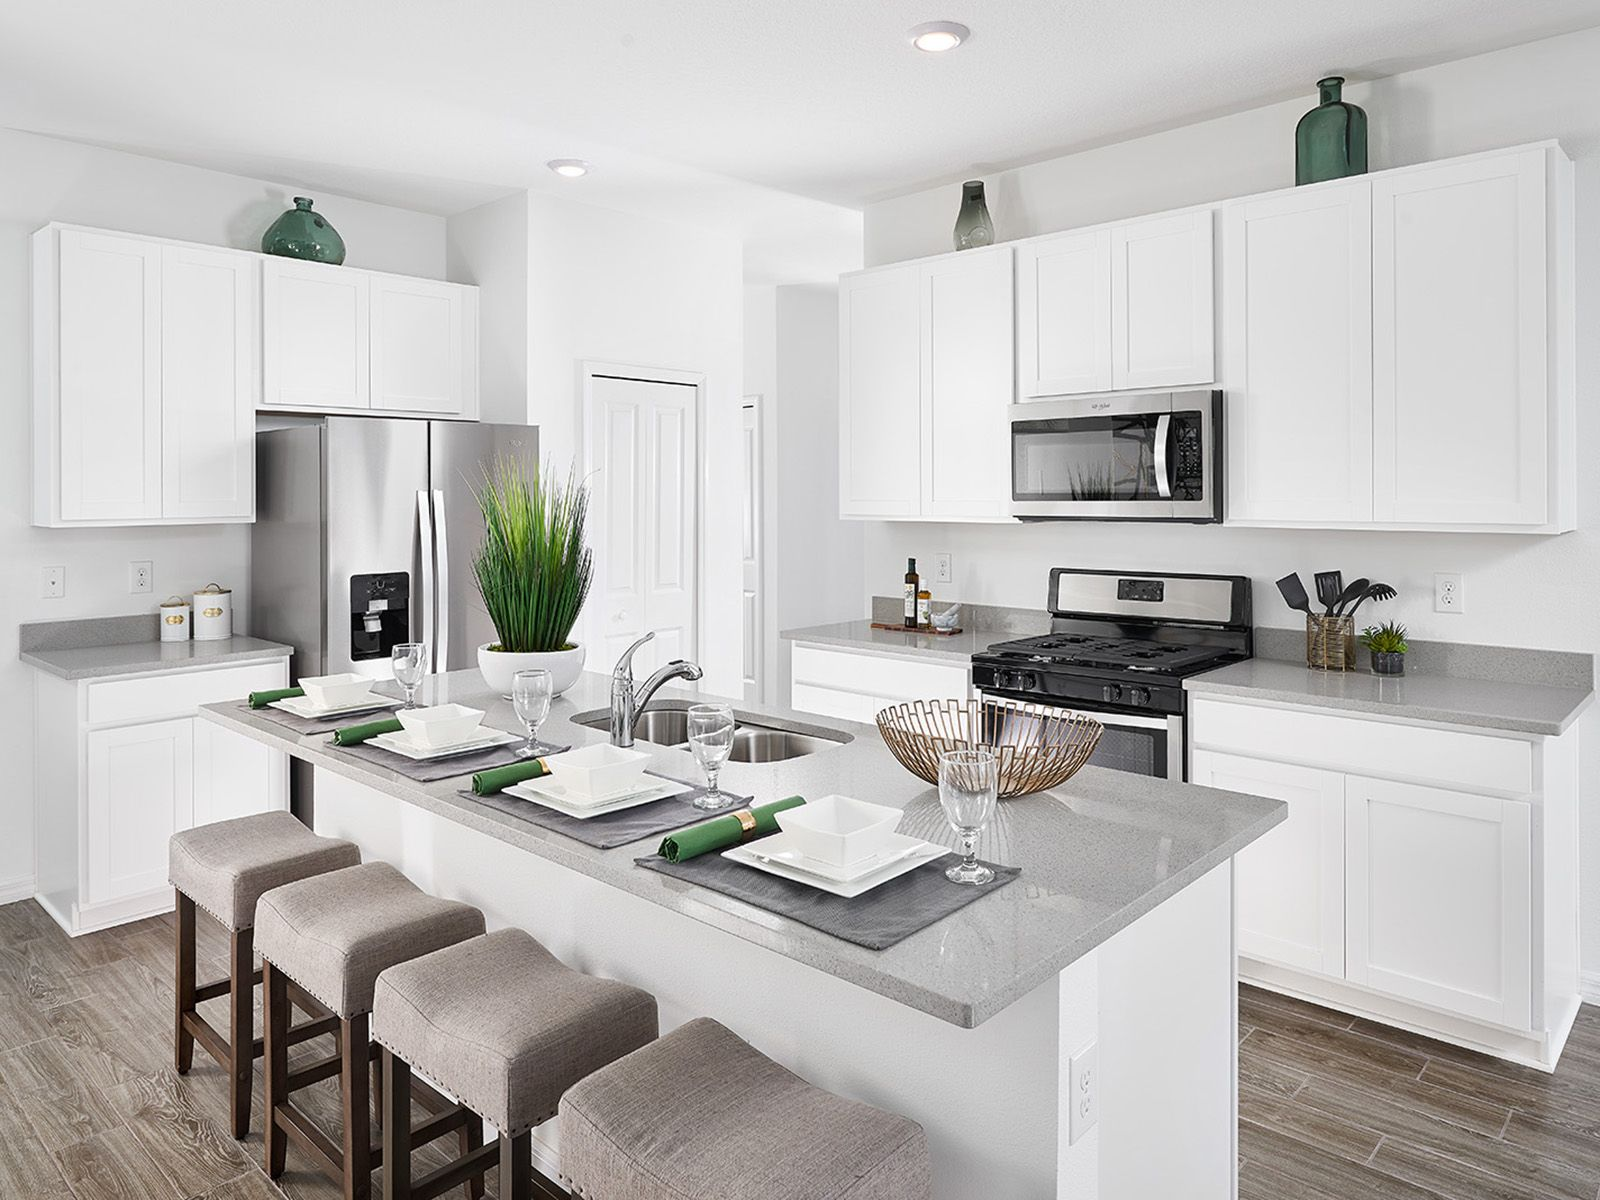 Kitchen featured in the Poinciana - Meritage Homes  By Crown Community Development